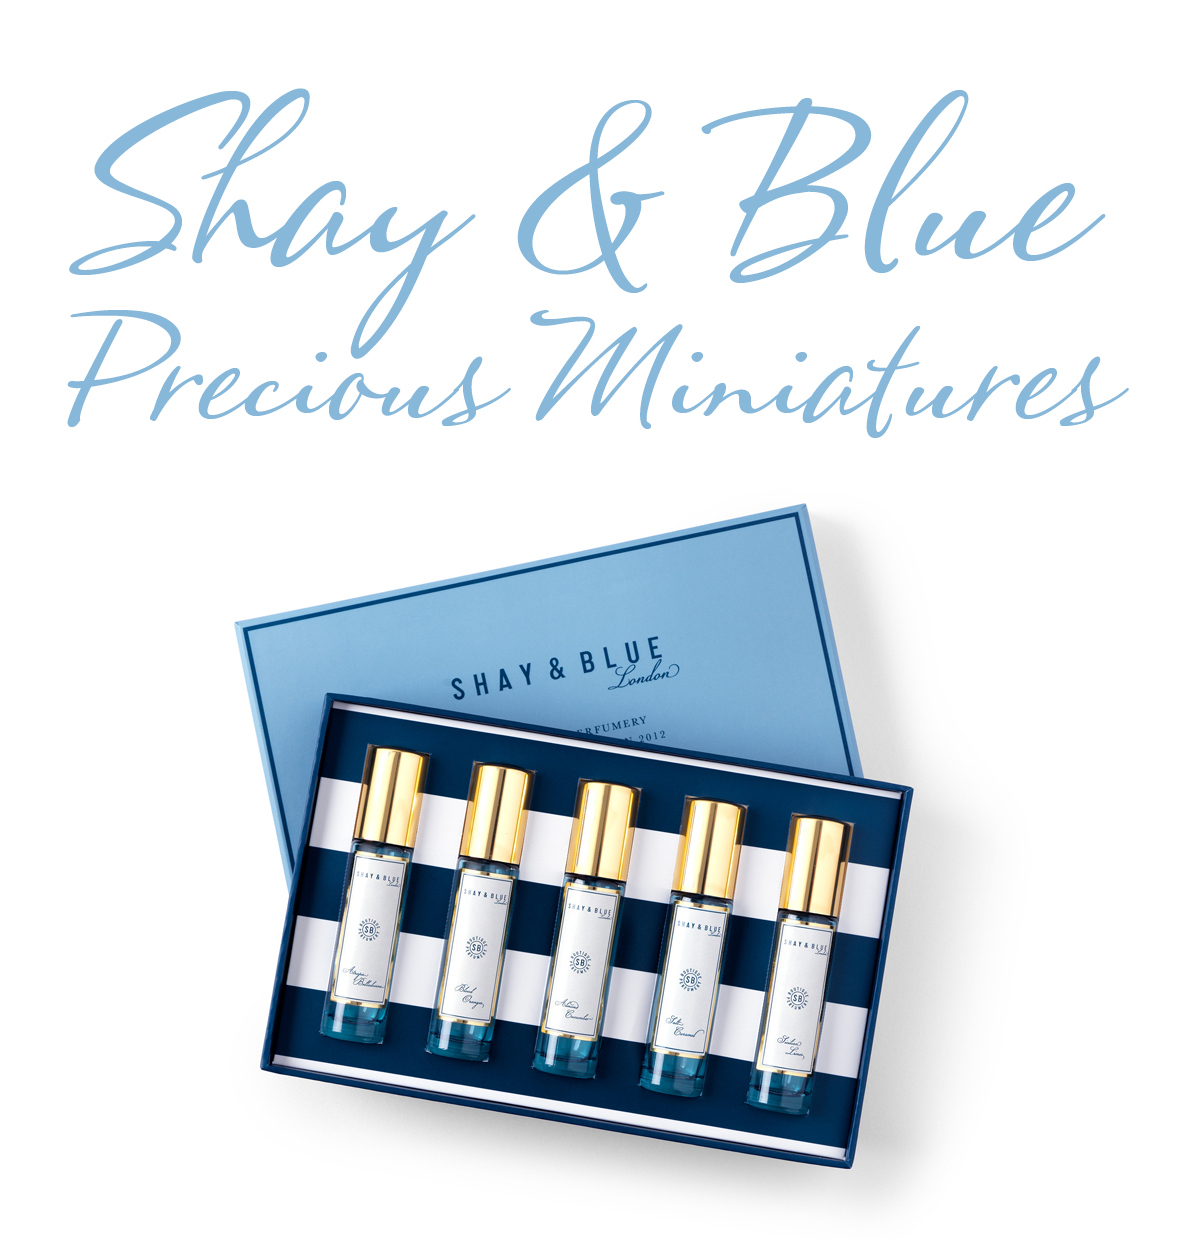 Shay & Blue Precious Miniatures